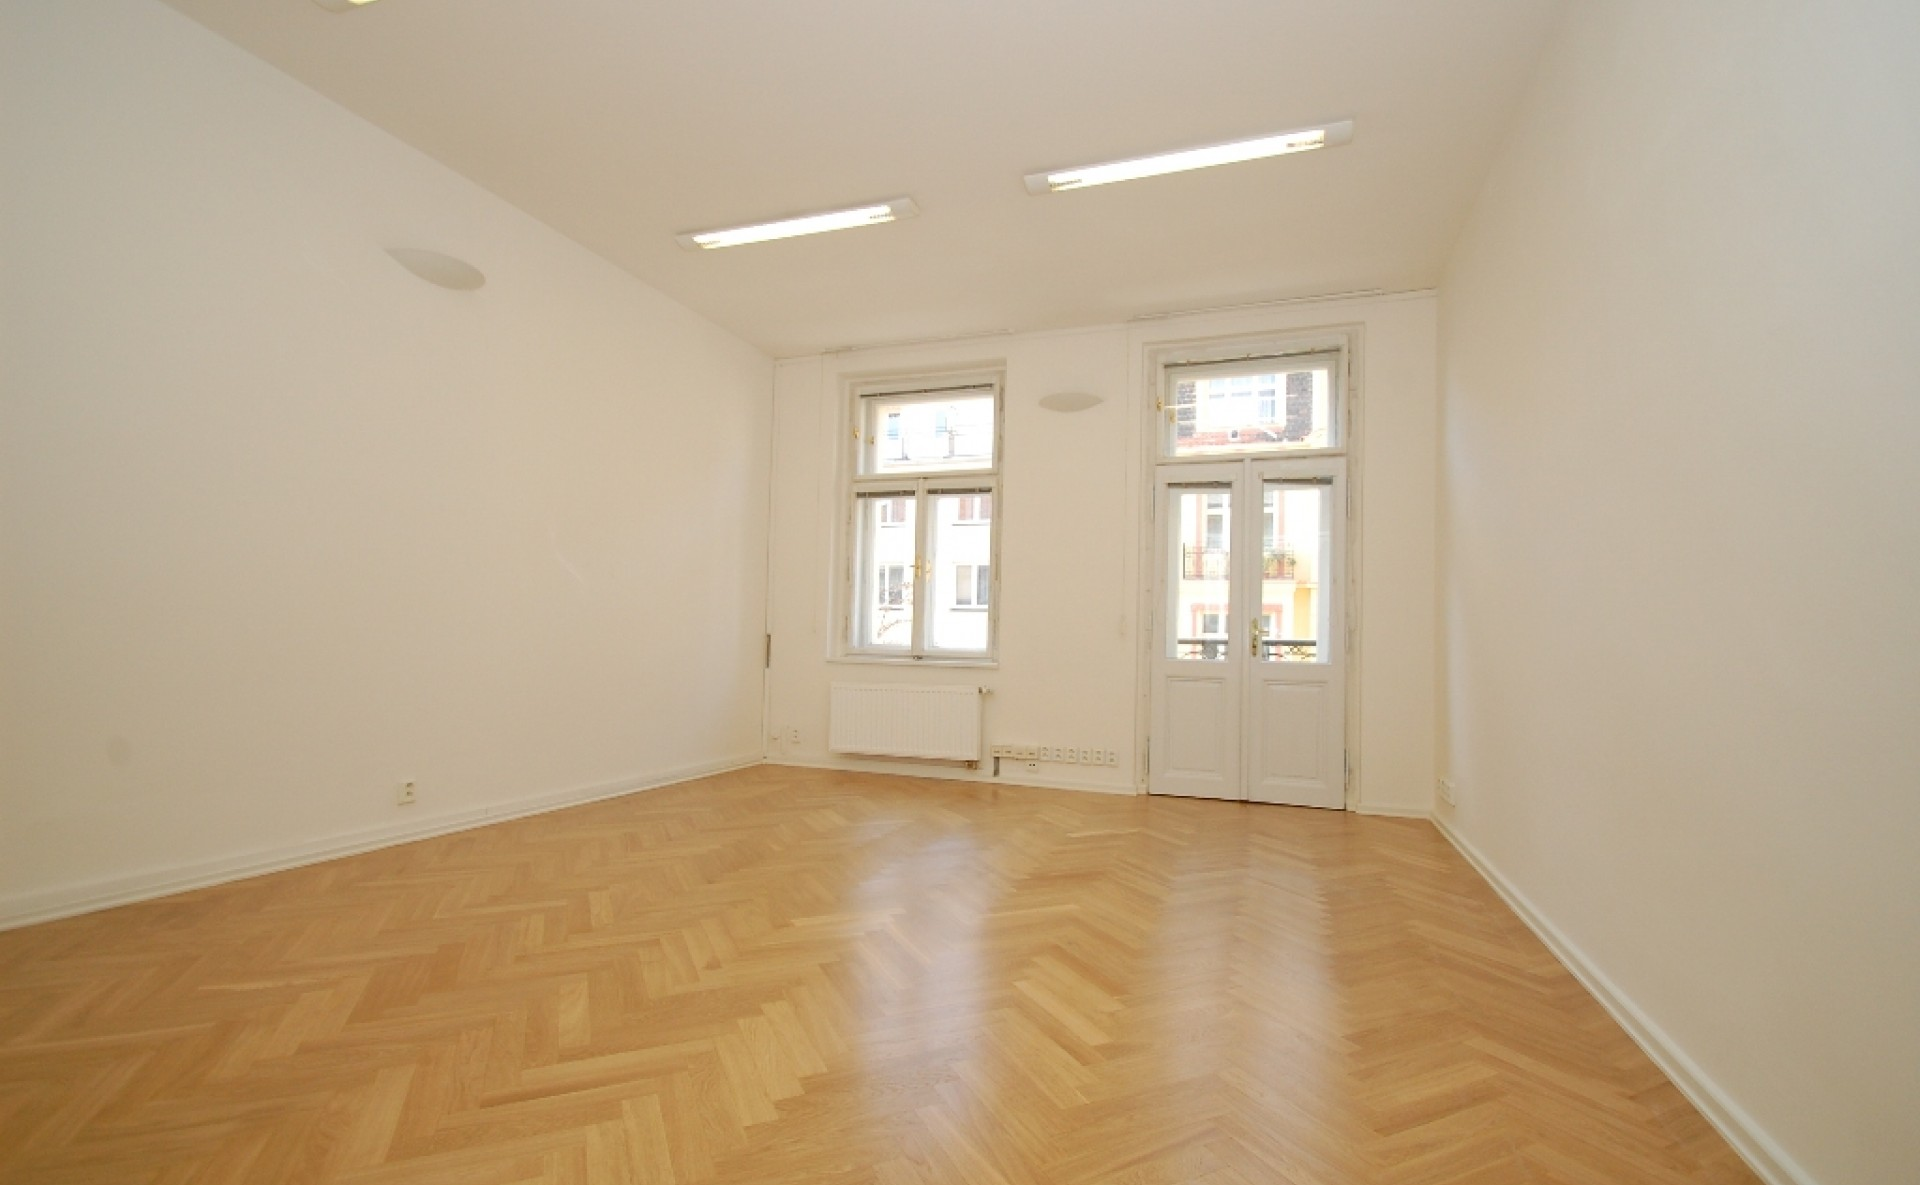 Offices for rent Prague 2